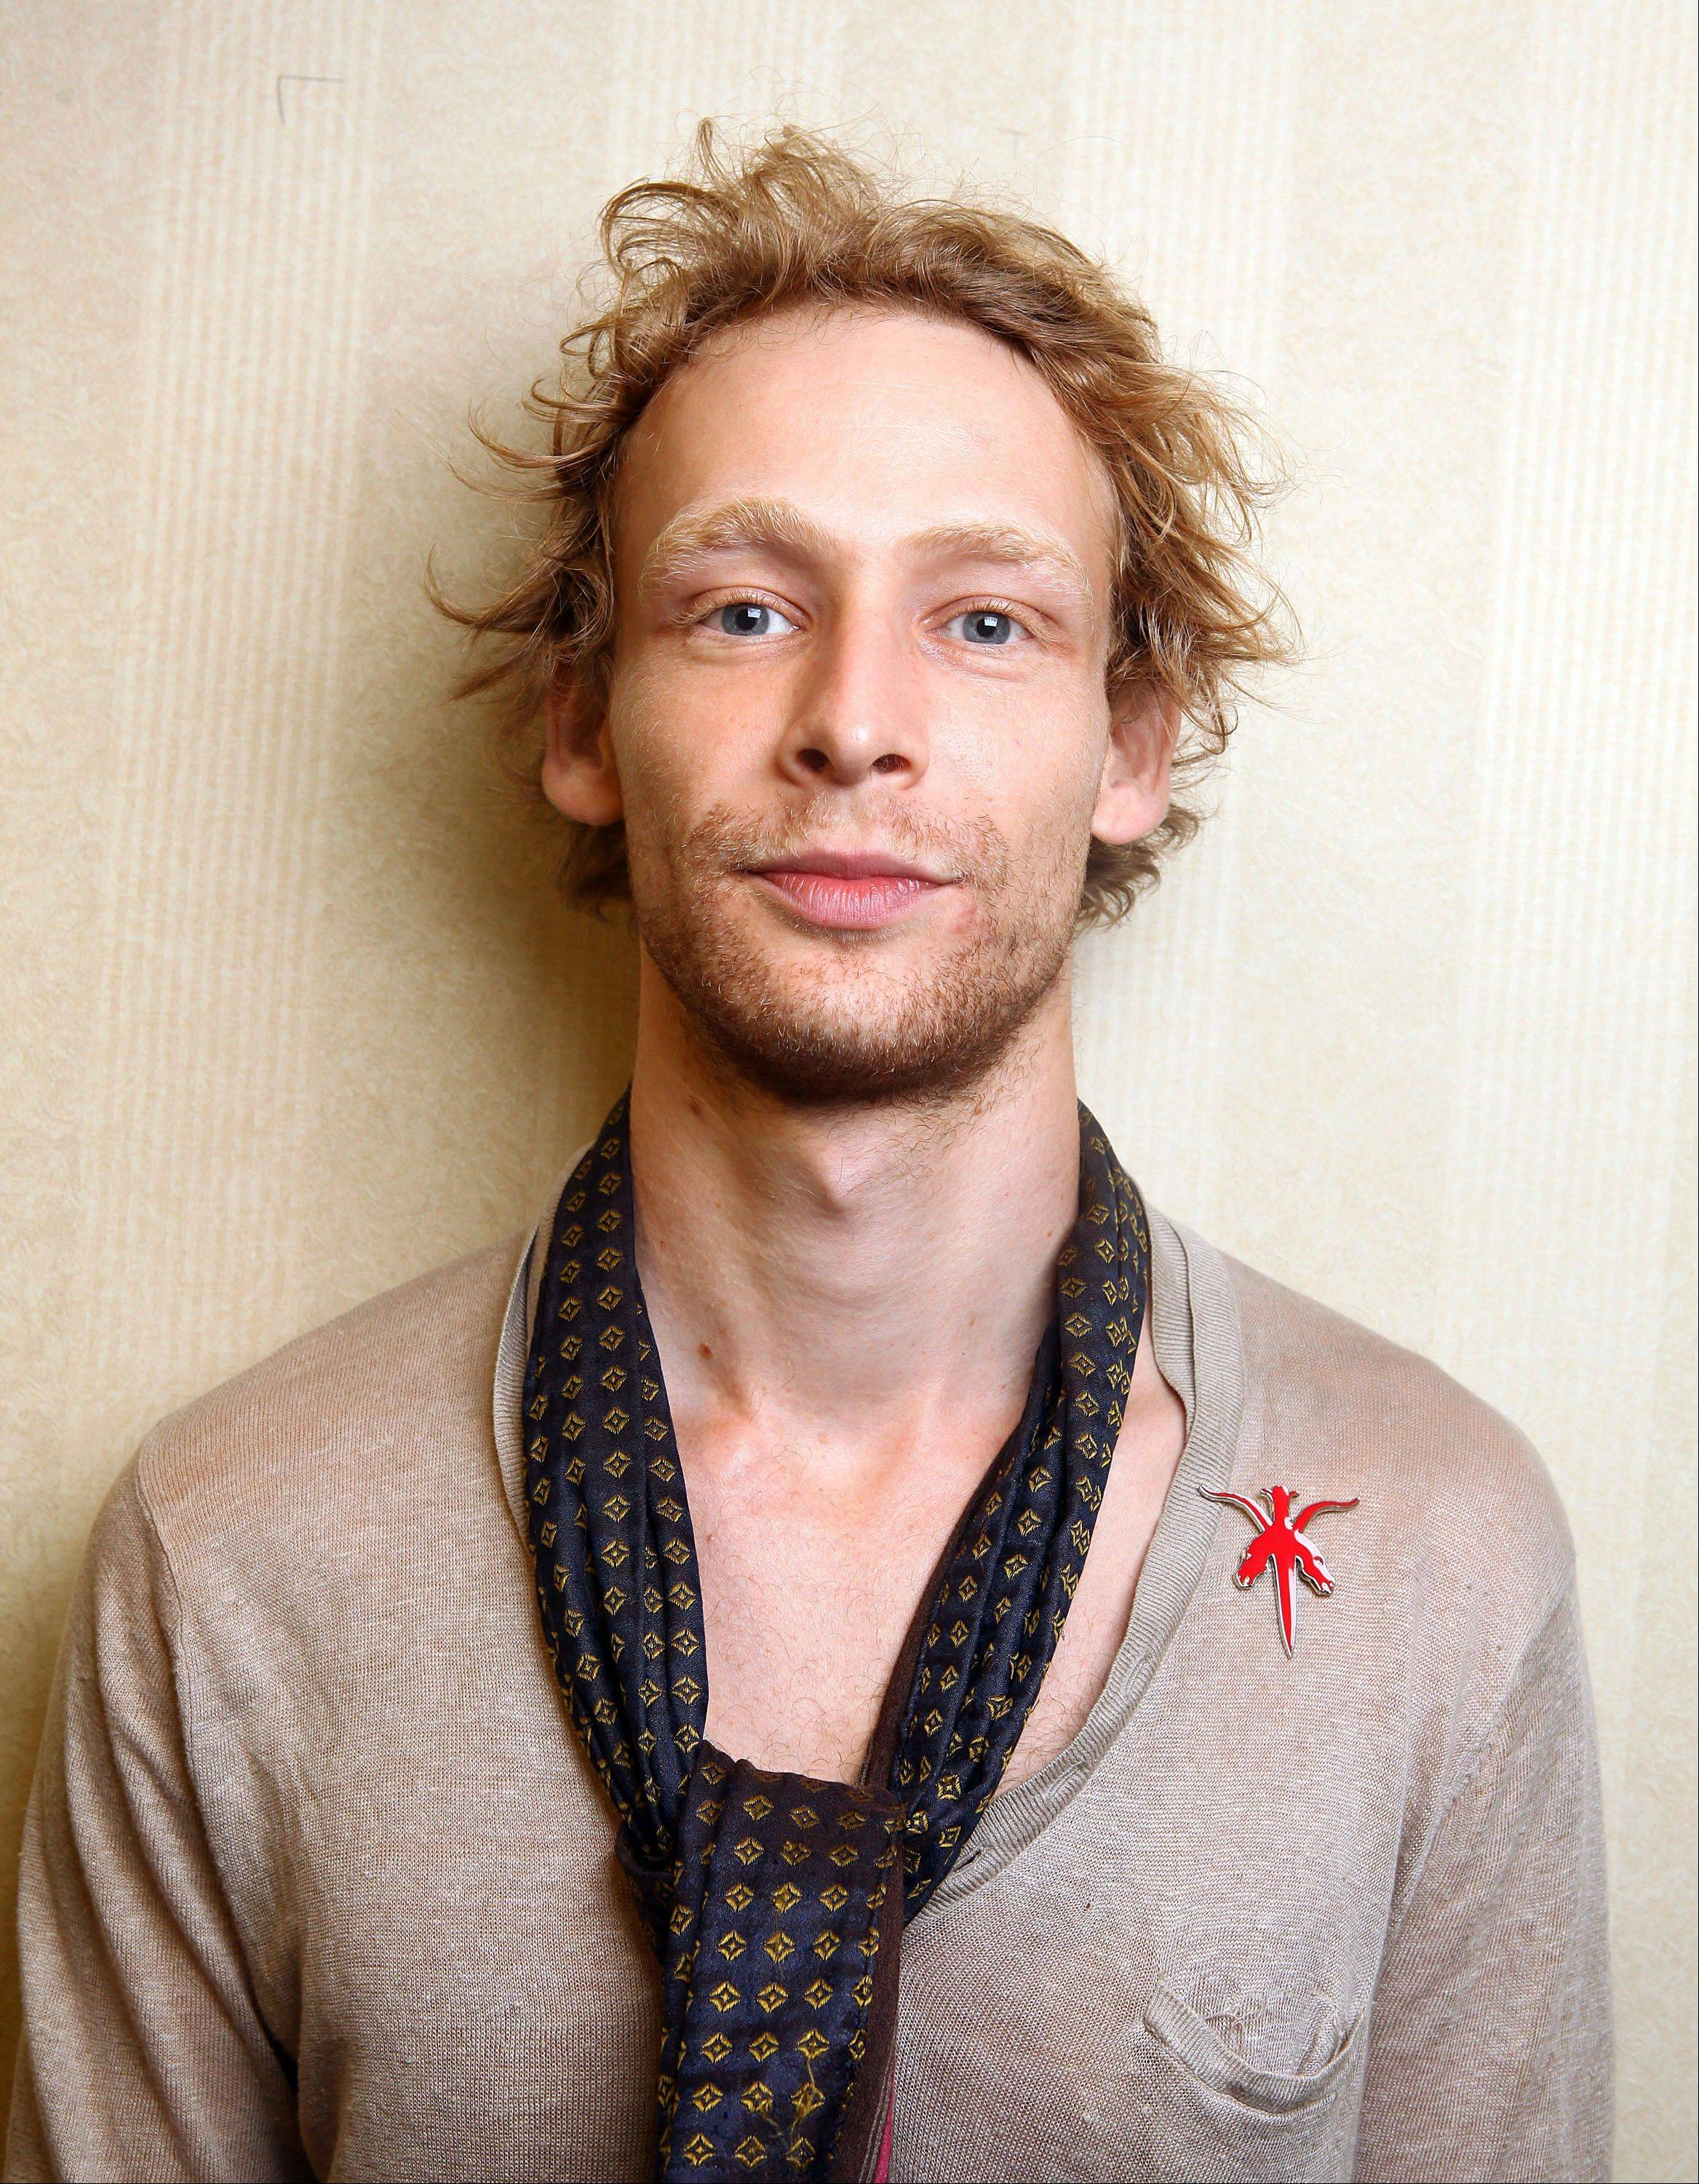 Authorities say actor Johnny Lewis fell to his death after killing an elderly Los Angeles woman. Lewis appeared in the FX television show �Sons of Anarchy,� for two seasons. The woman killed is identified as 81-year-old Catherine Davis.